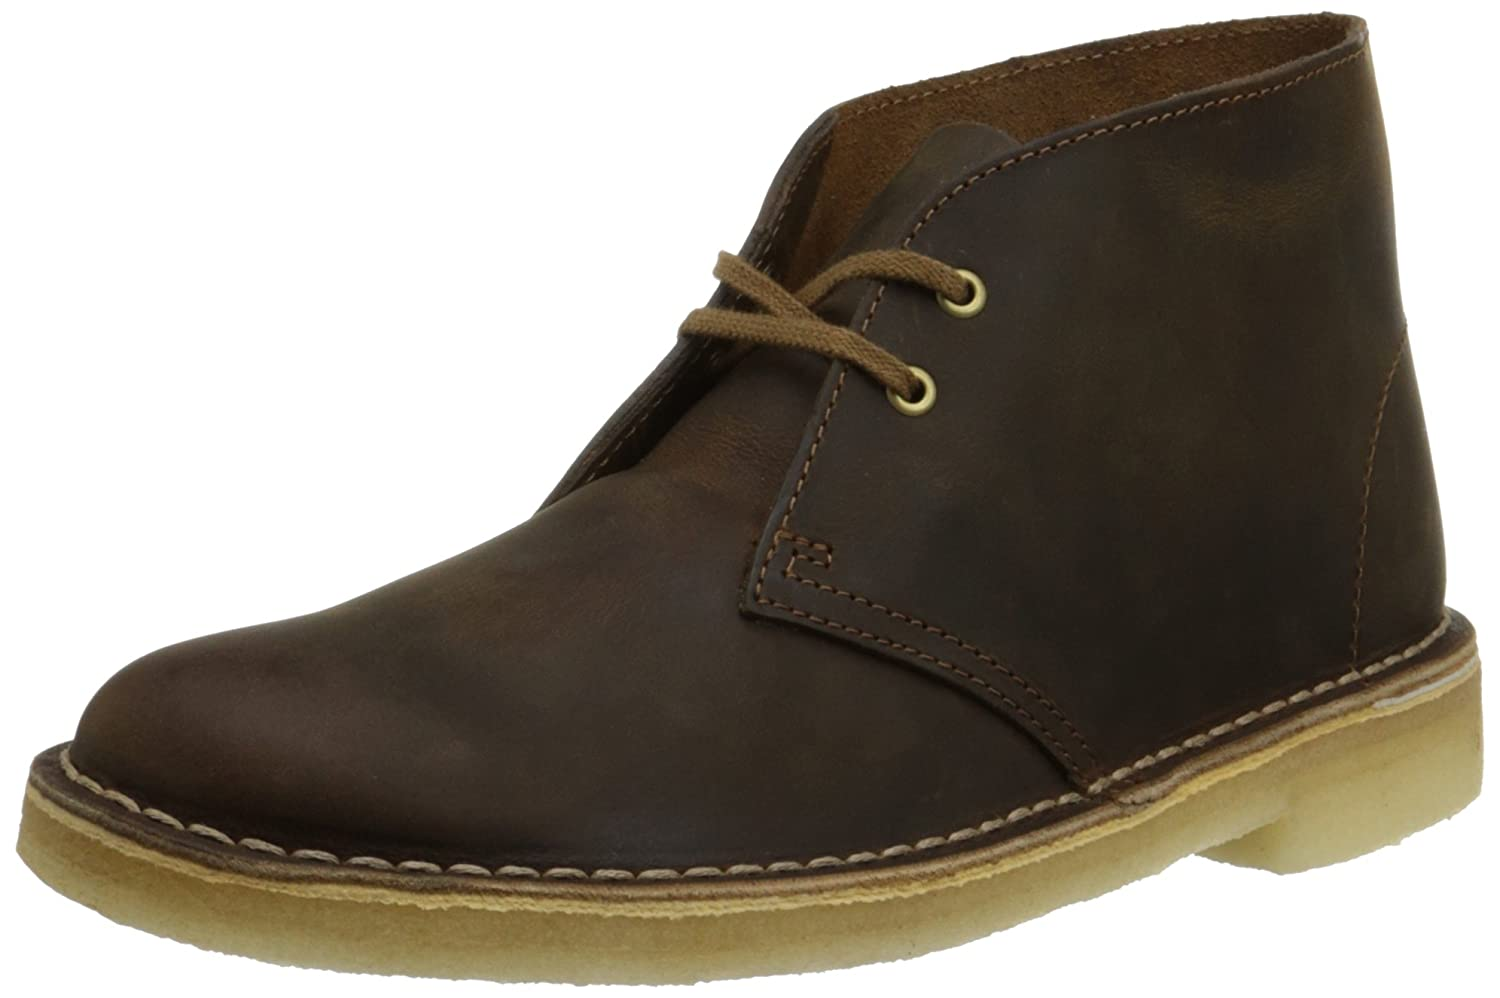 CLARKS Women's Desert Boot Ankle Bootie B00UCVQ91Q 9 B(M) US|Beeswax Leather